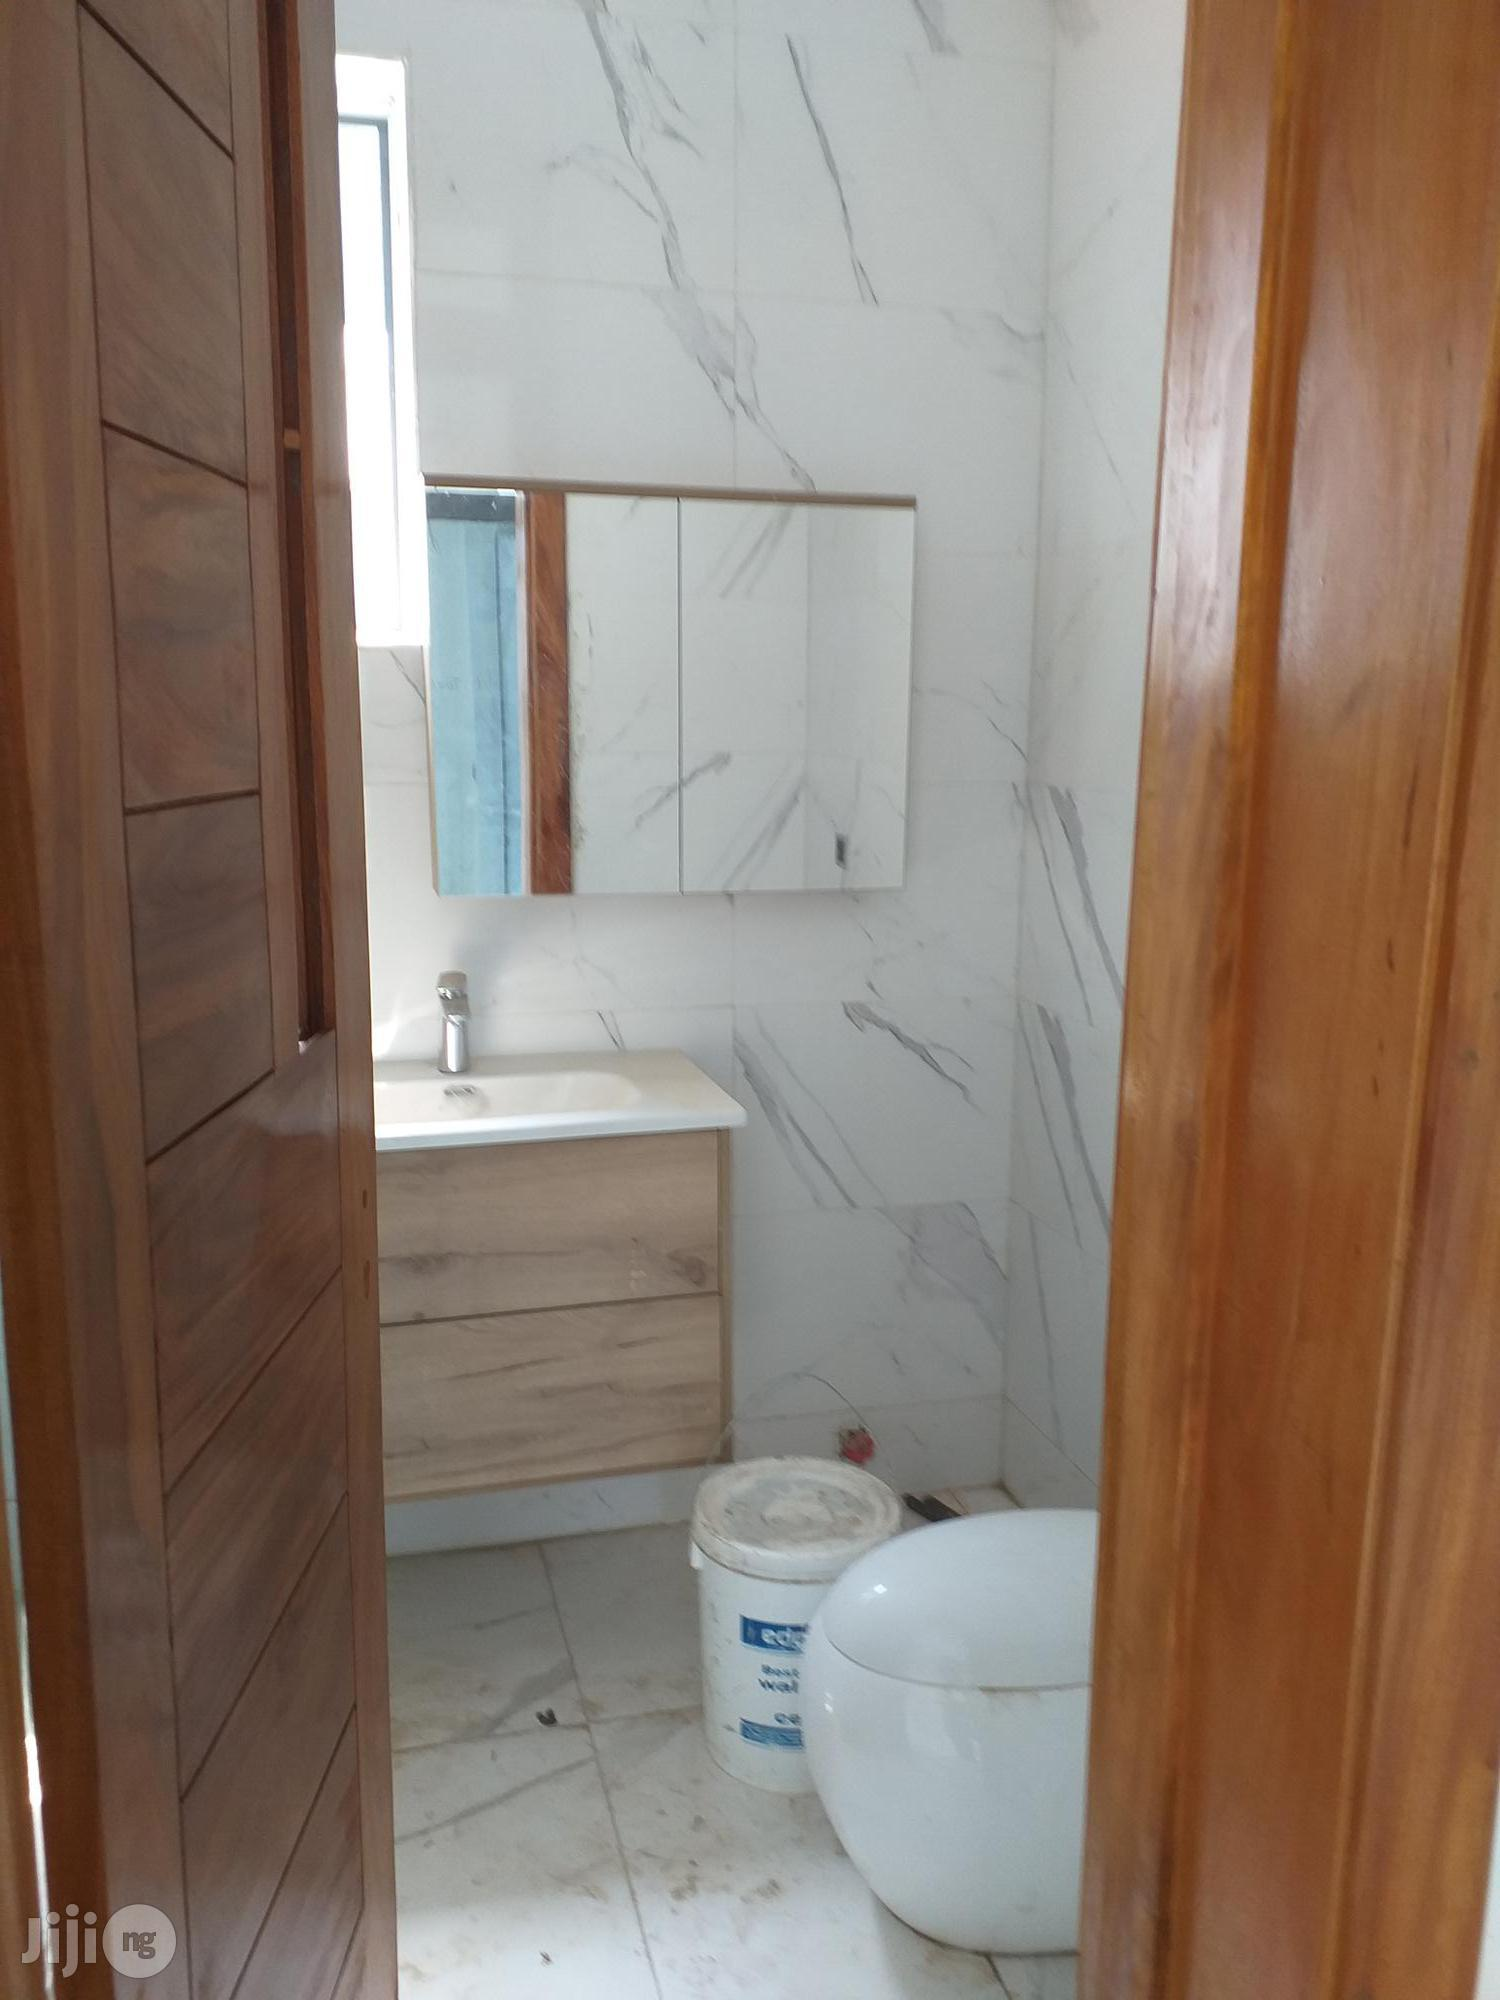 New & Spacious 5 Bedroom Detached Mansion At Osapa Lekki For Sale. | Houses & Apartments For Sale for sale in Lekki, Lagos State, Nigeria